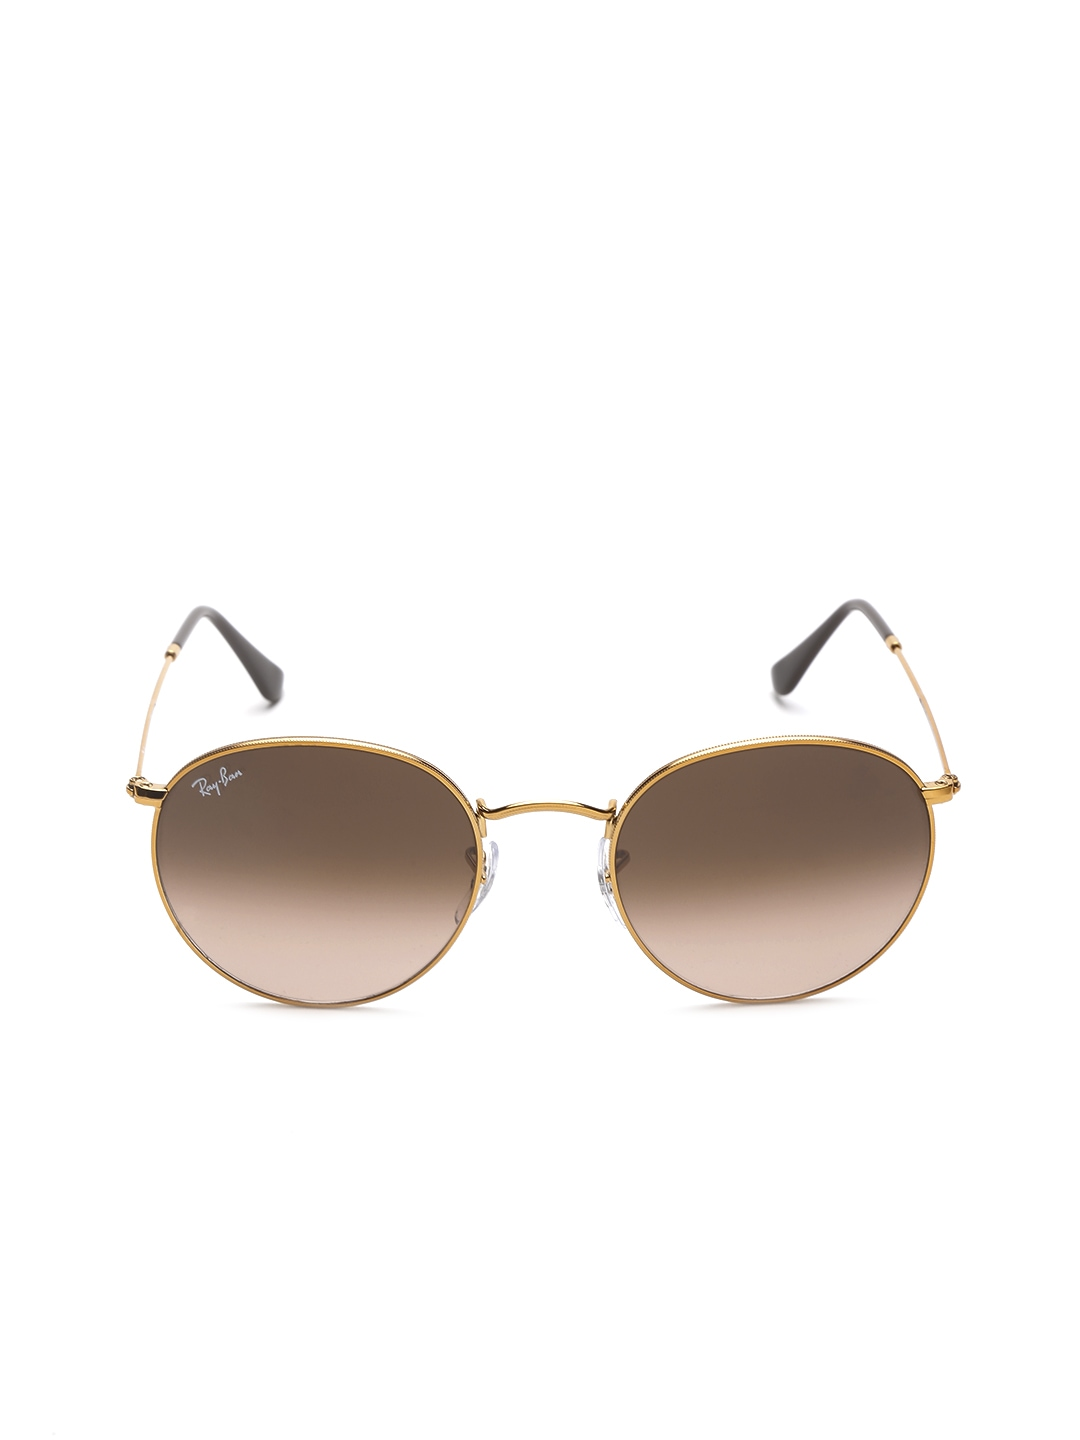 Ray Ban Sunglass Price List In  sunglasses price list in india 09 05 2017 sunglasses online